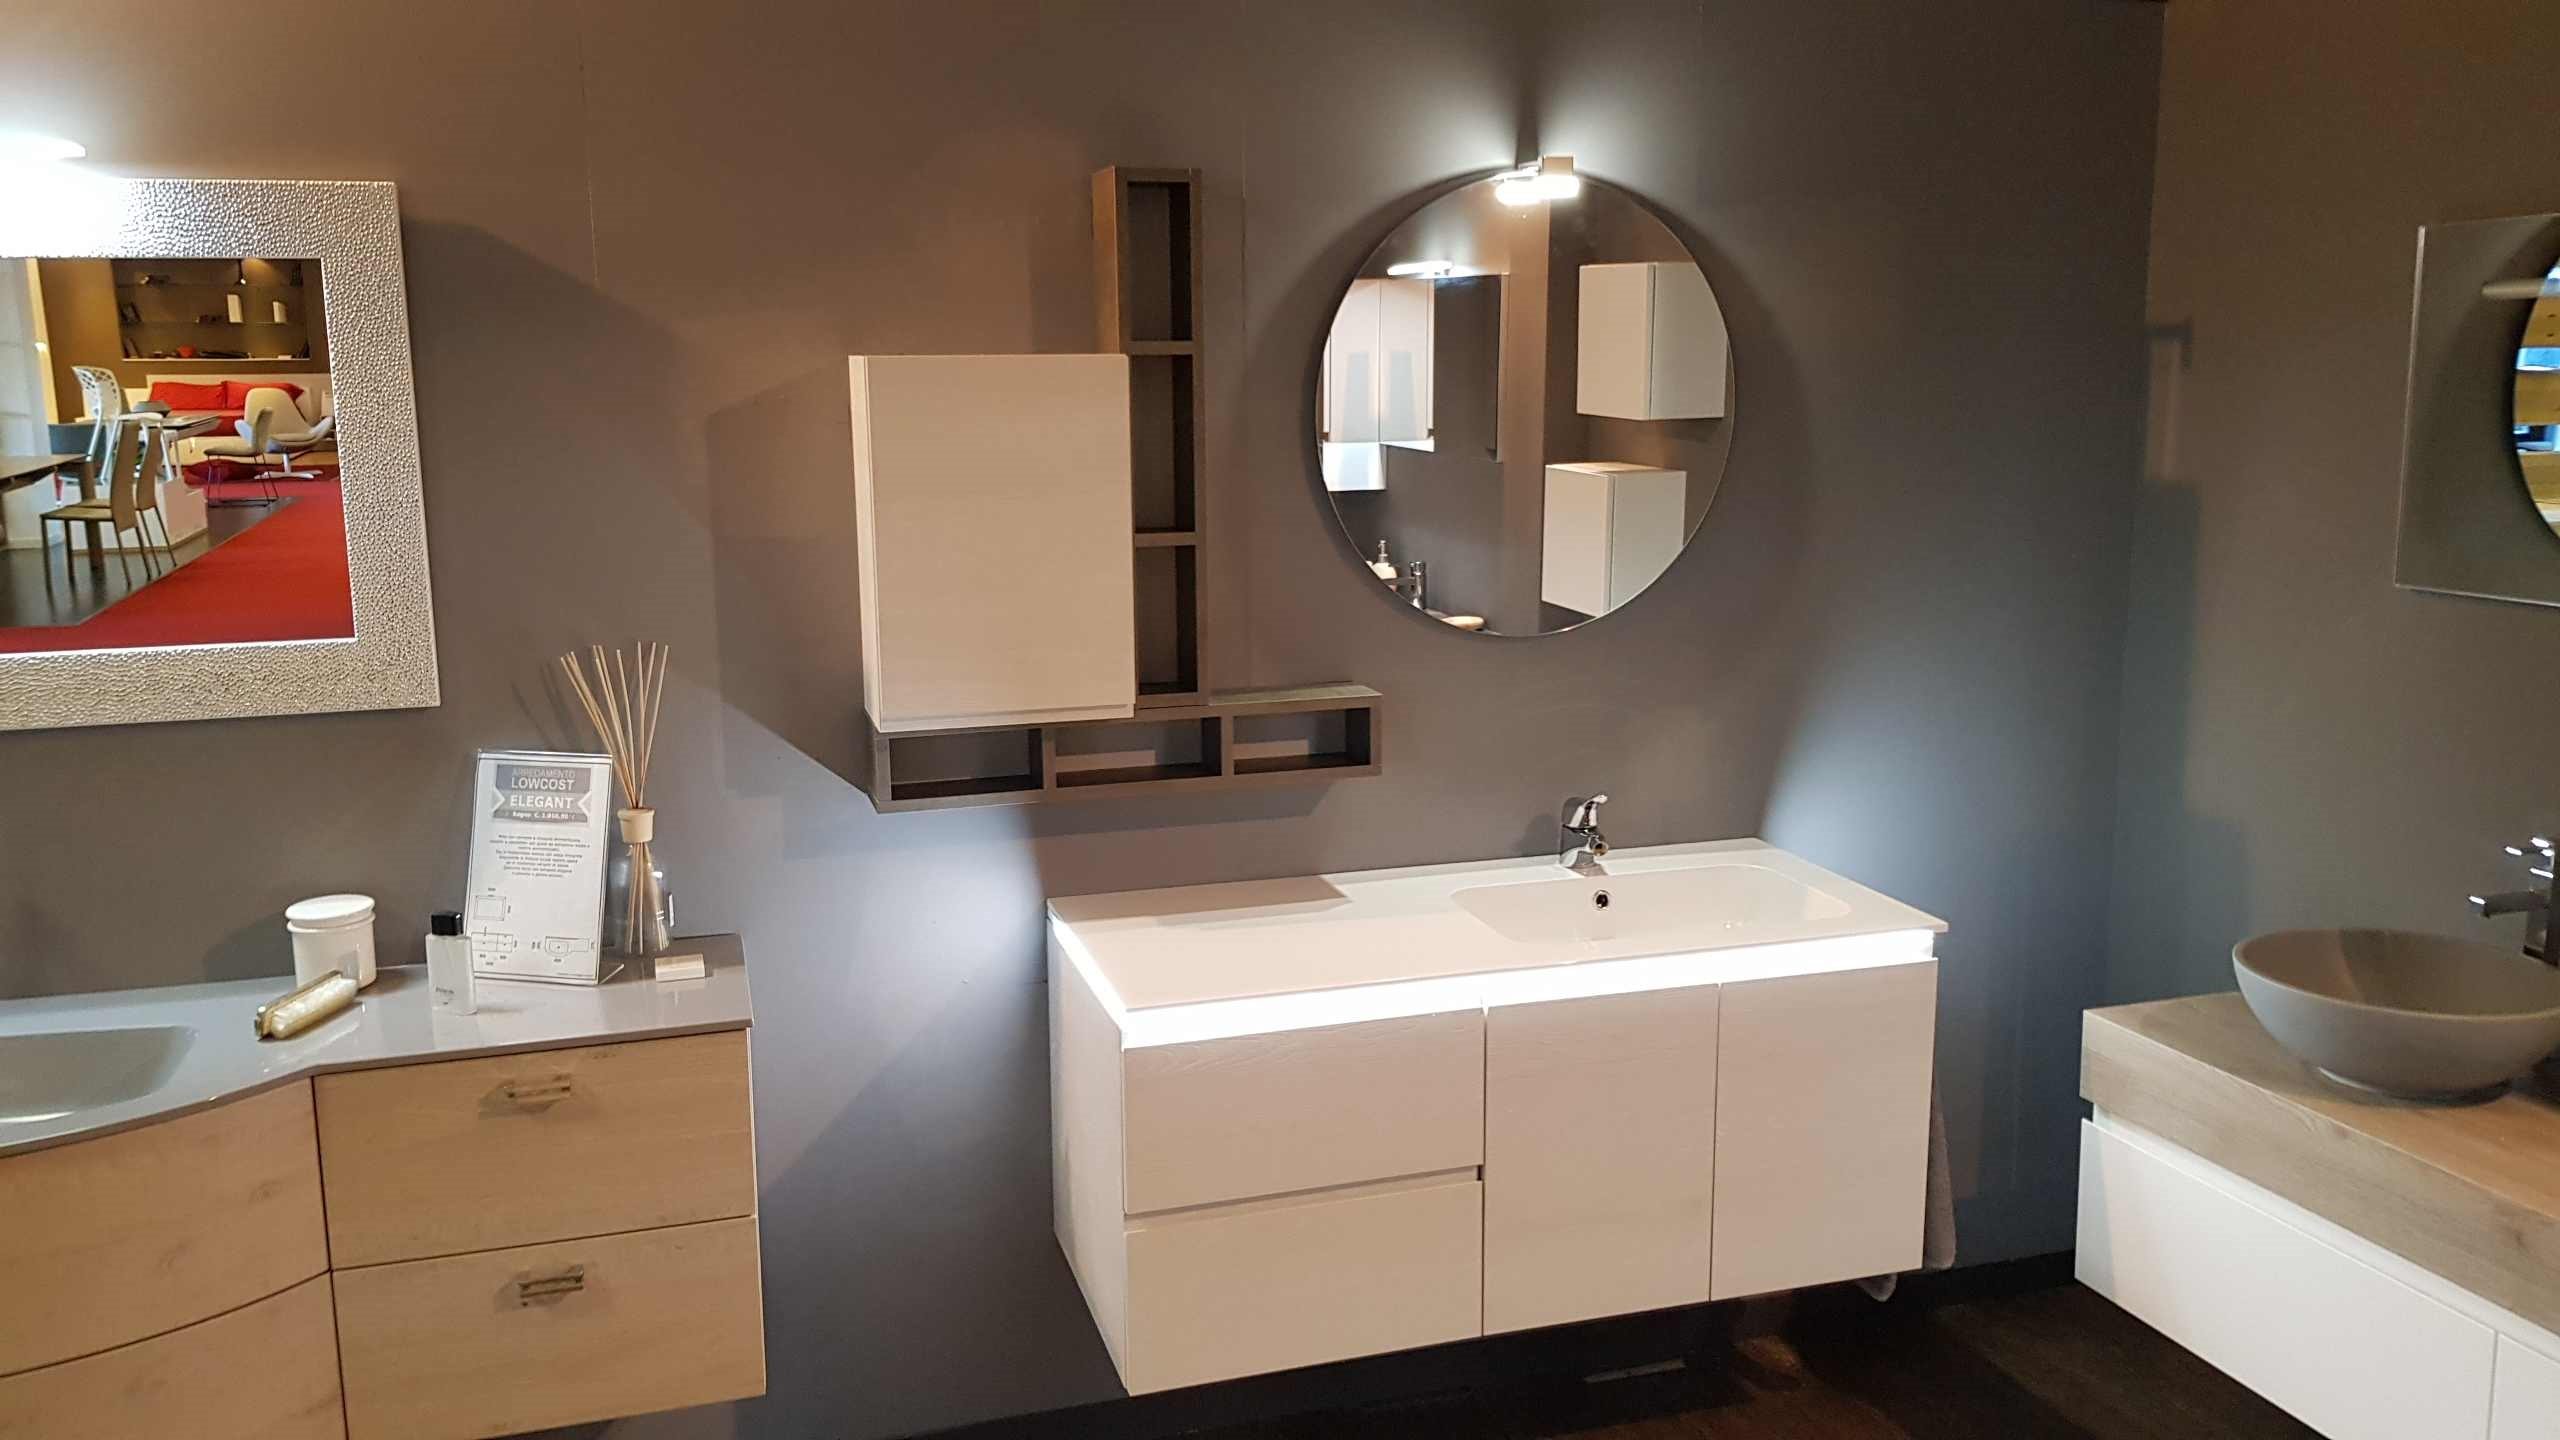 Outlet bagno compab in offerta con luce a led arredo for Outlet arredo